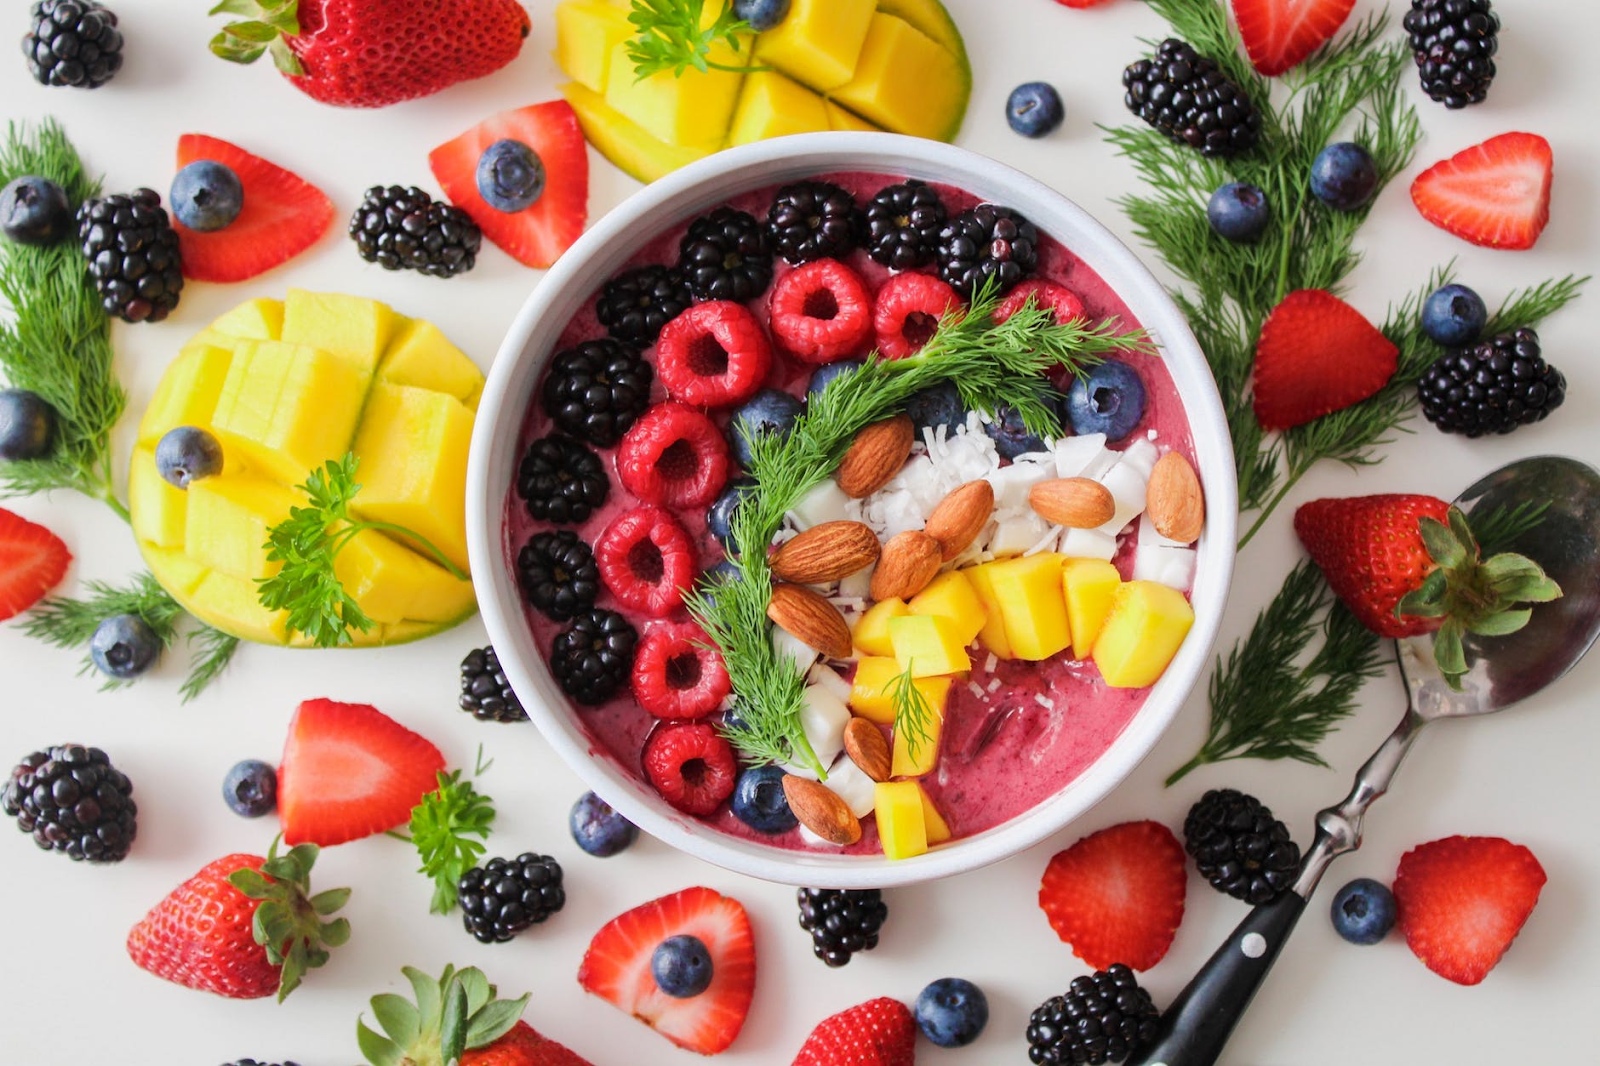 A colorful yogurt fruit bowl full of nutrients that can help boost your memory.